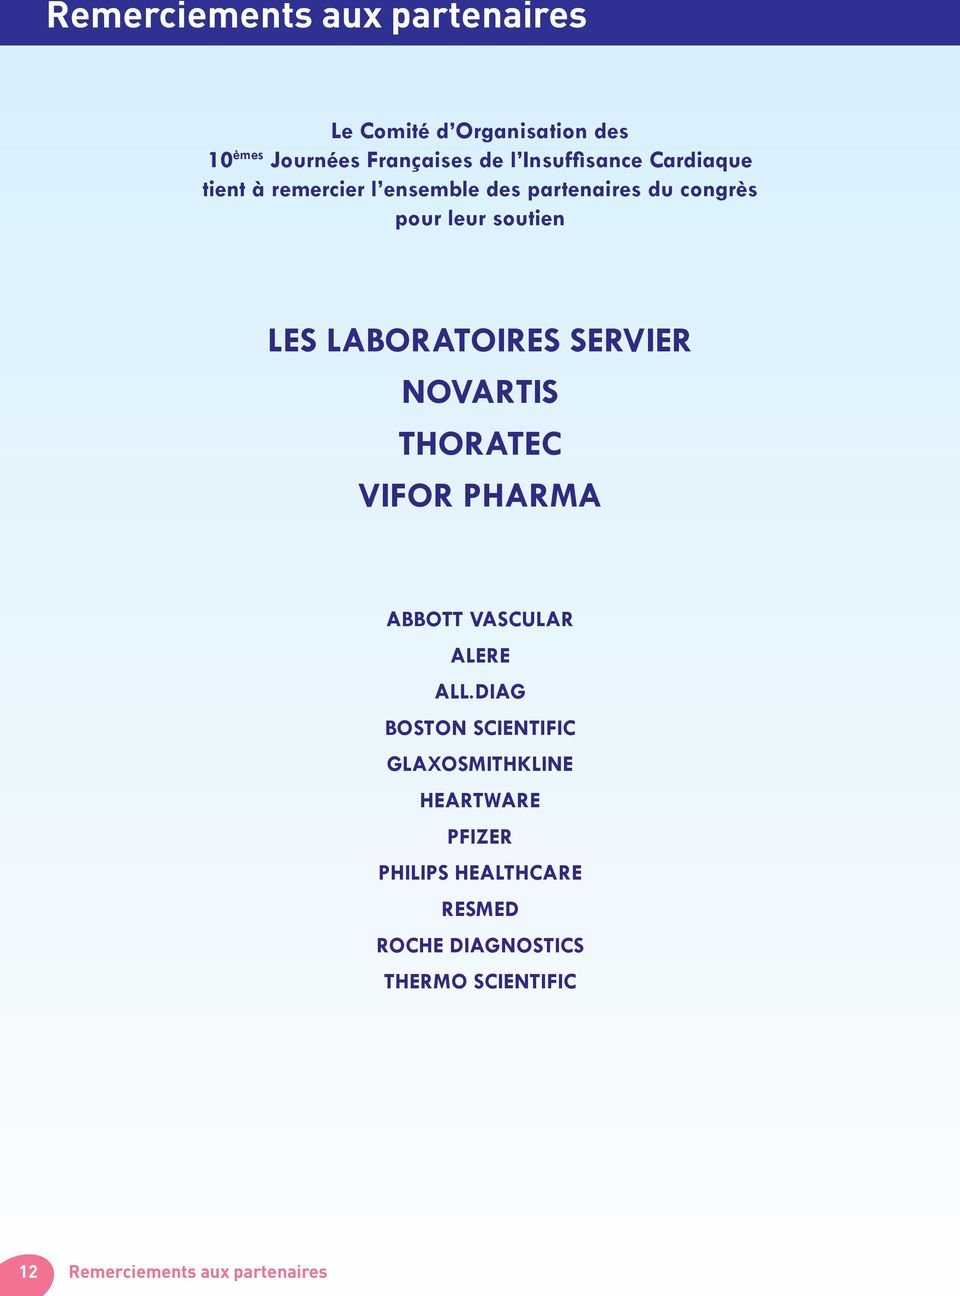 SERVIER NOVARTIS THORATEC VIFOR PHARMA ABBOTT VASCULAR ALERE ALL.